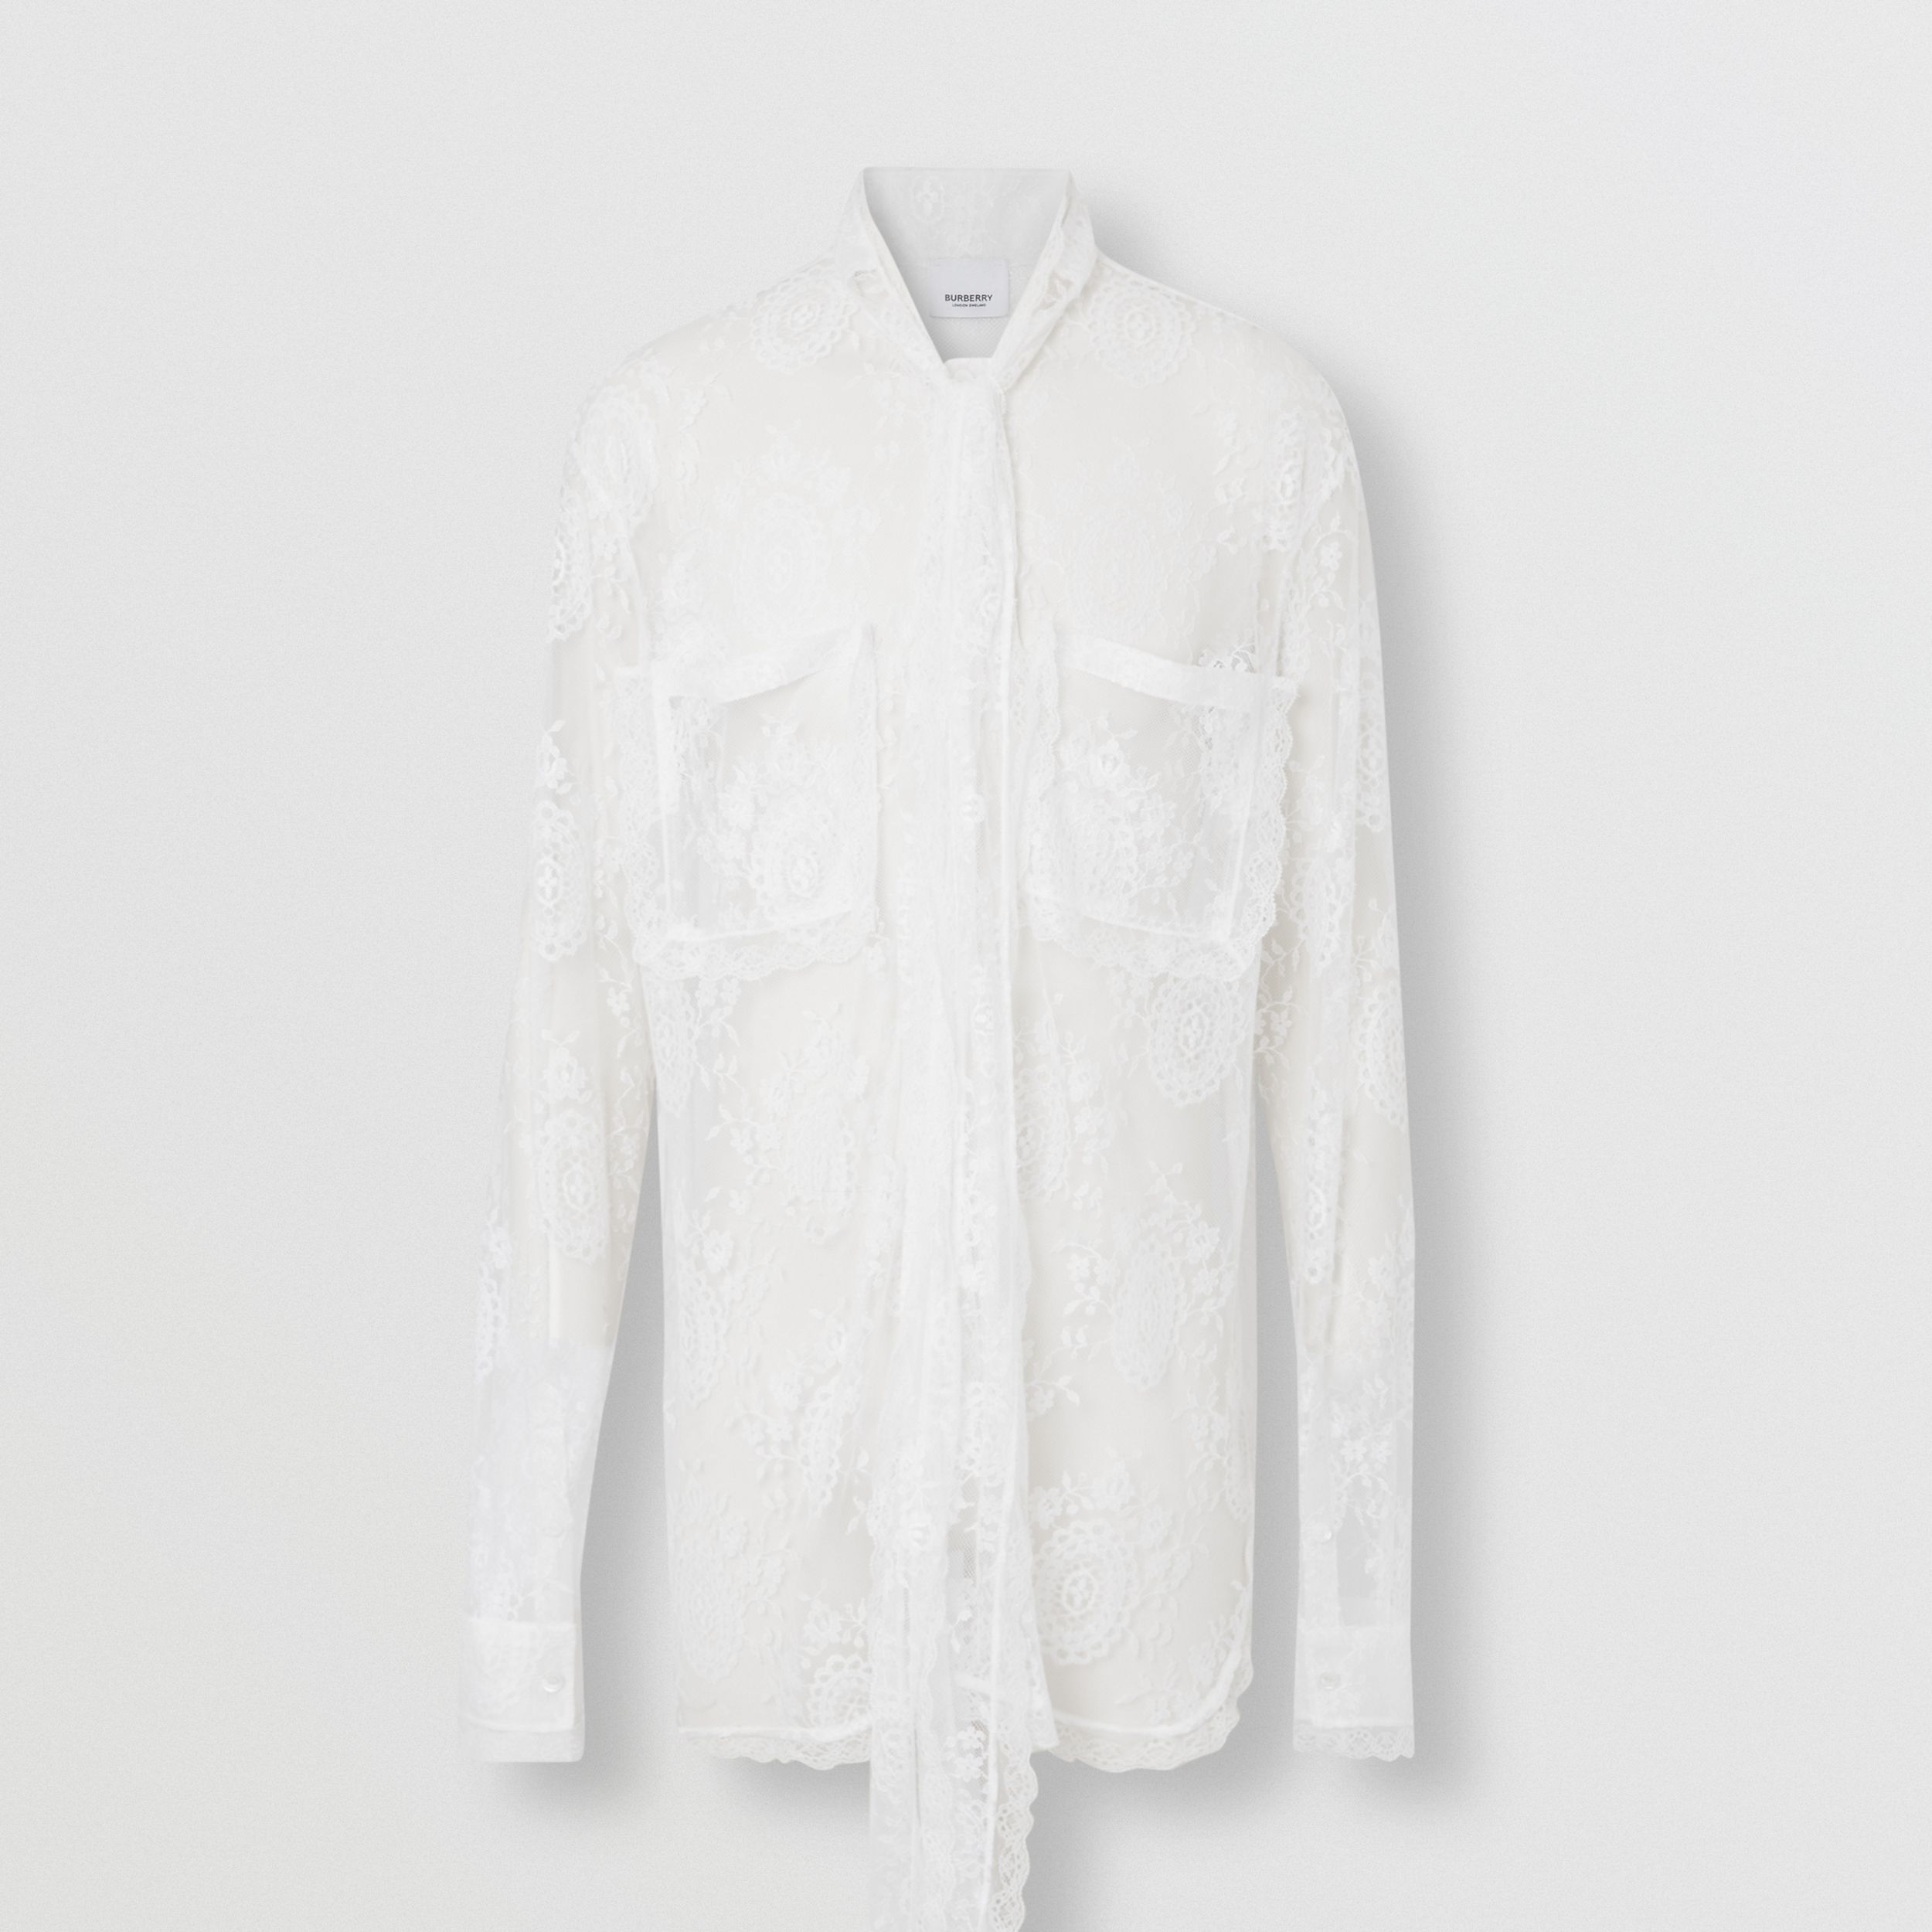 Chantilly Lace Oversized Tie-neck Shirt in Optic White - Men | Burberry - 4